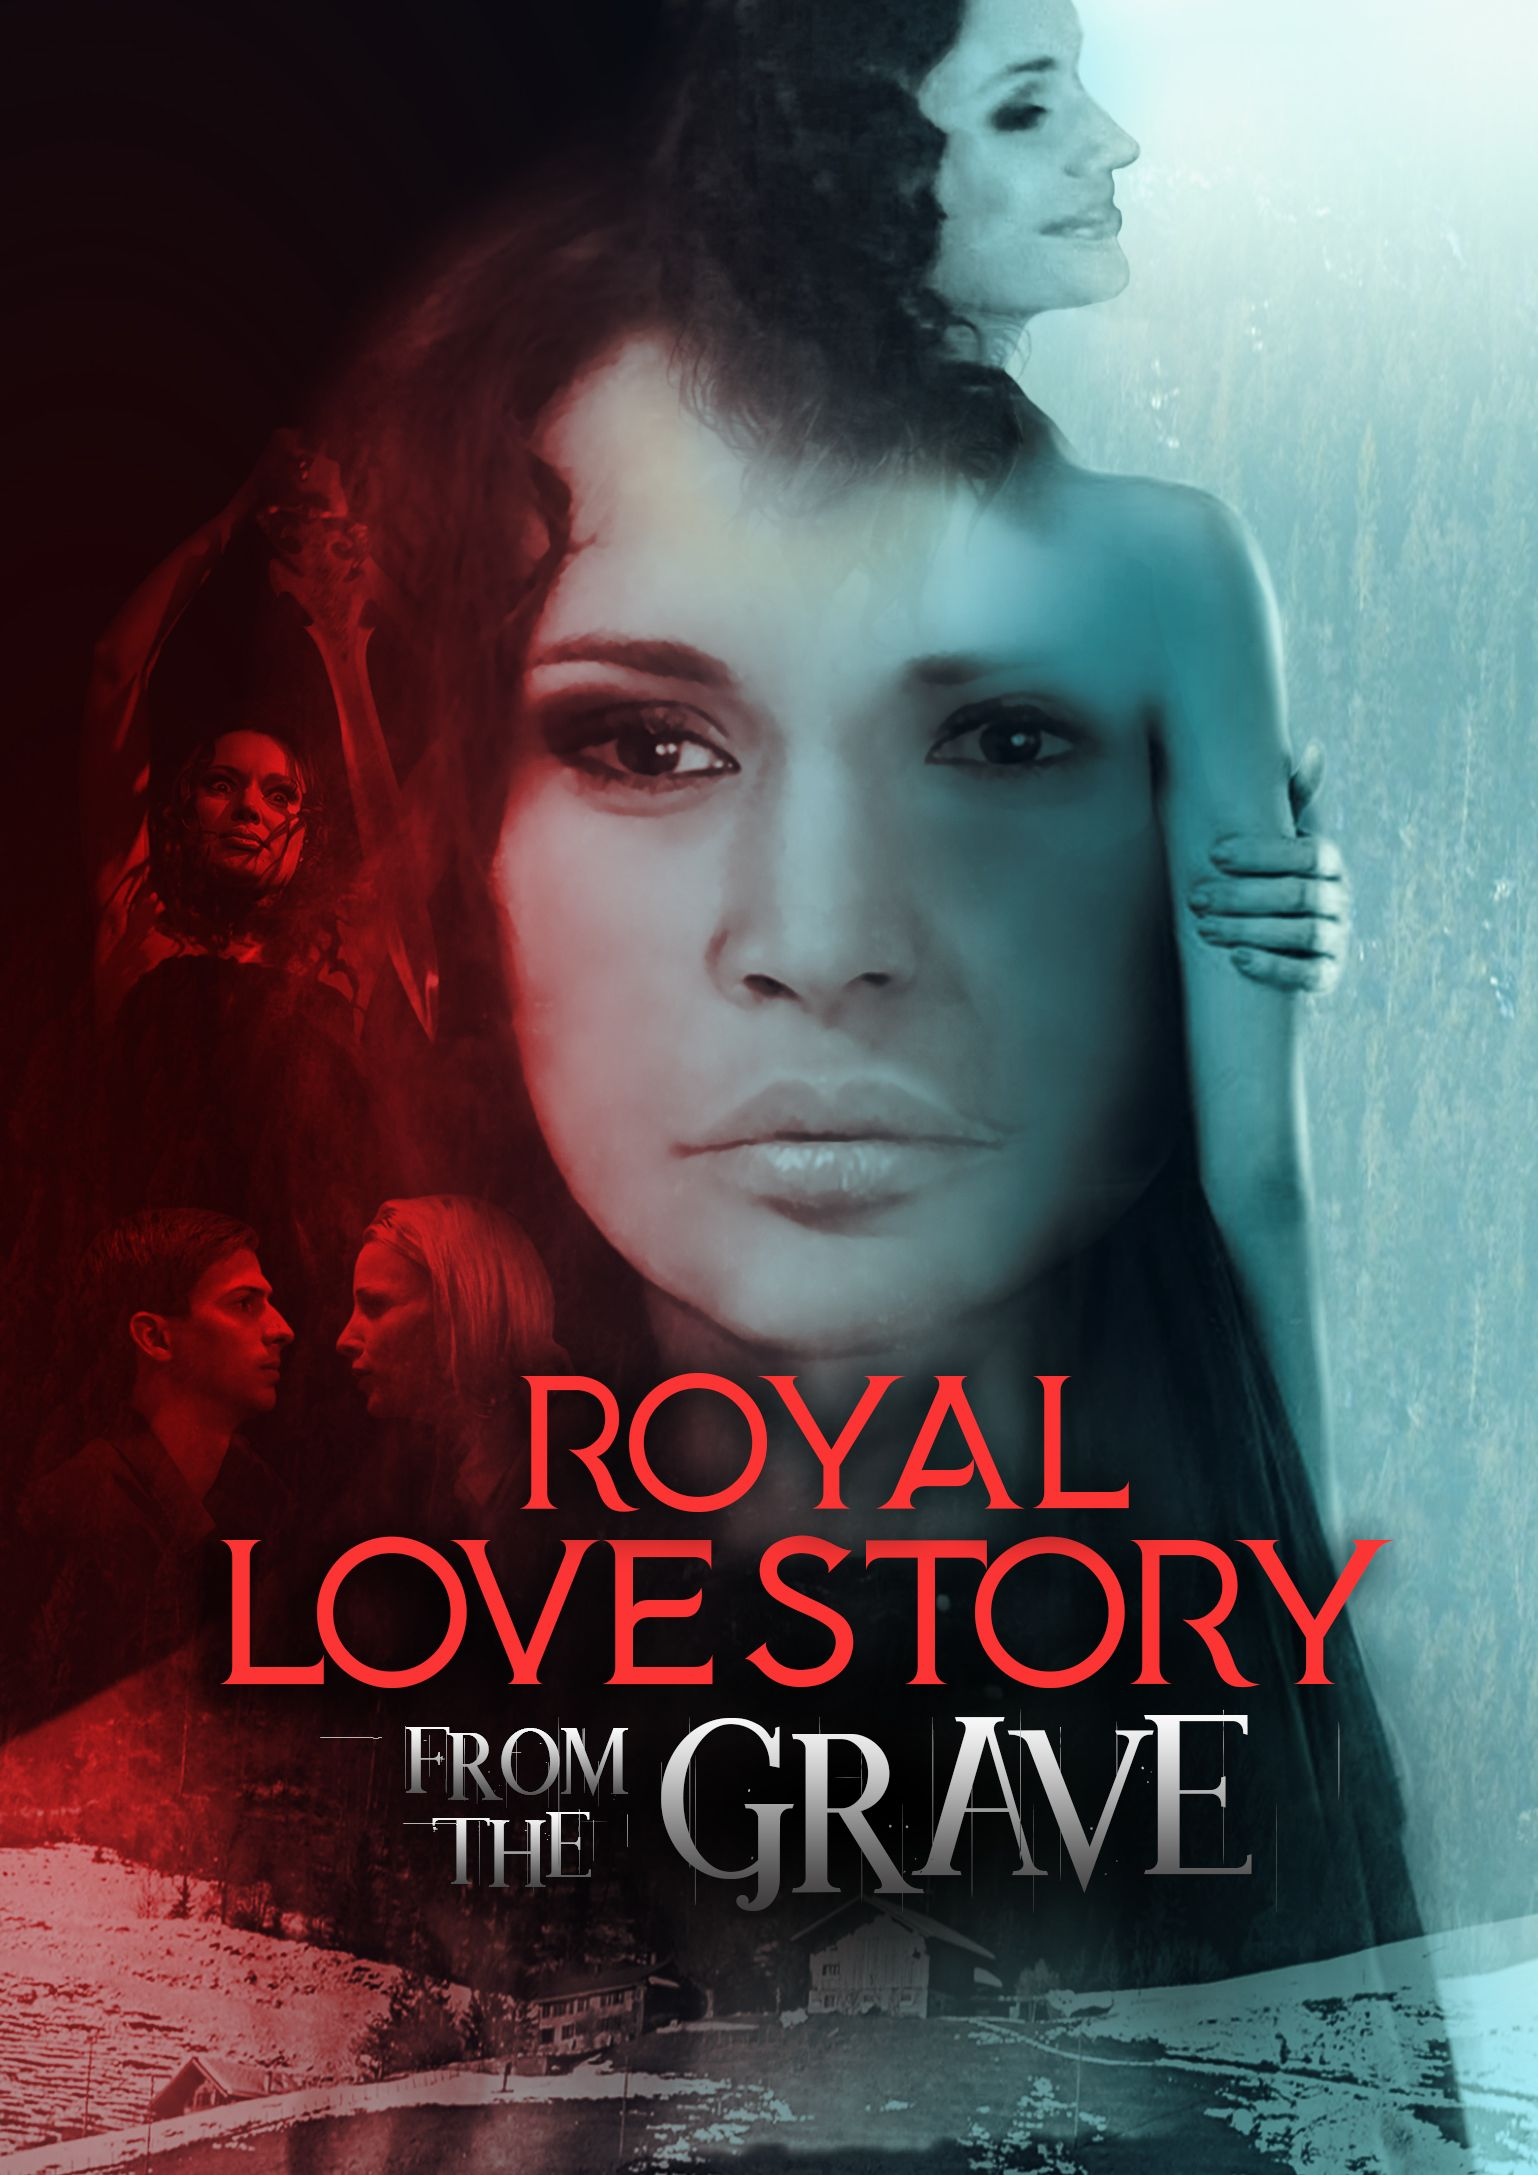 Watch 'Royal Love Story From The Grave' on Tubi TV